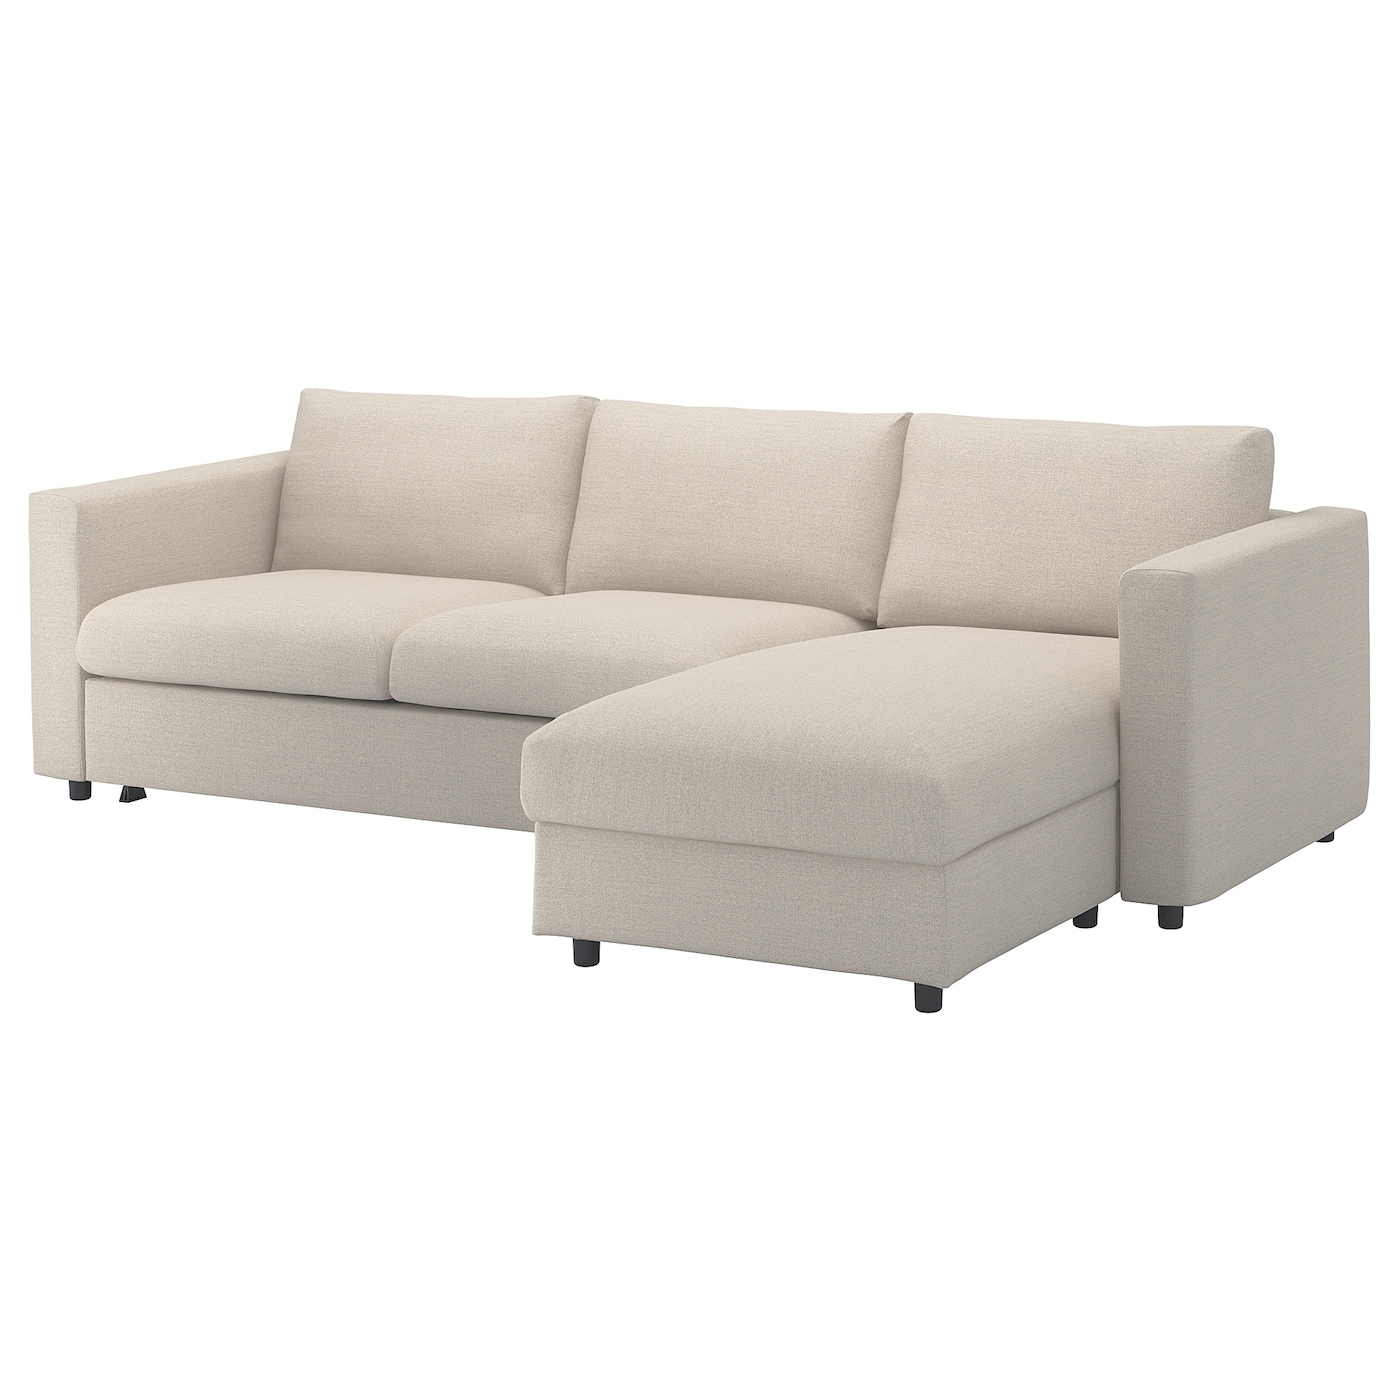 Vimle With Chaise Longue Gunnared Beige